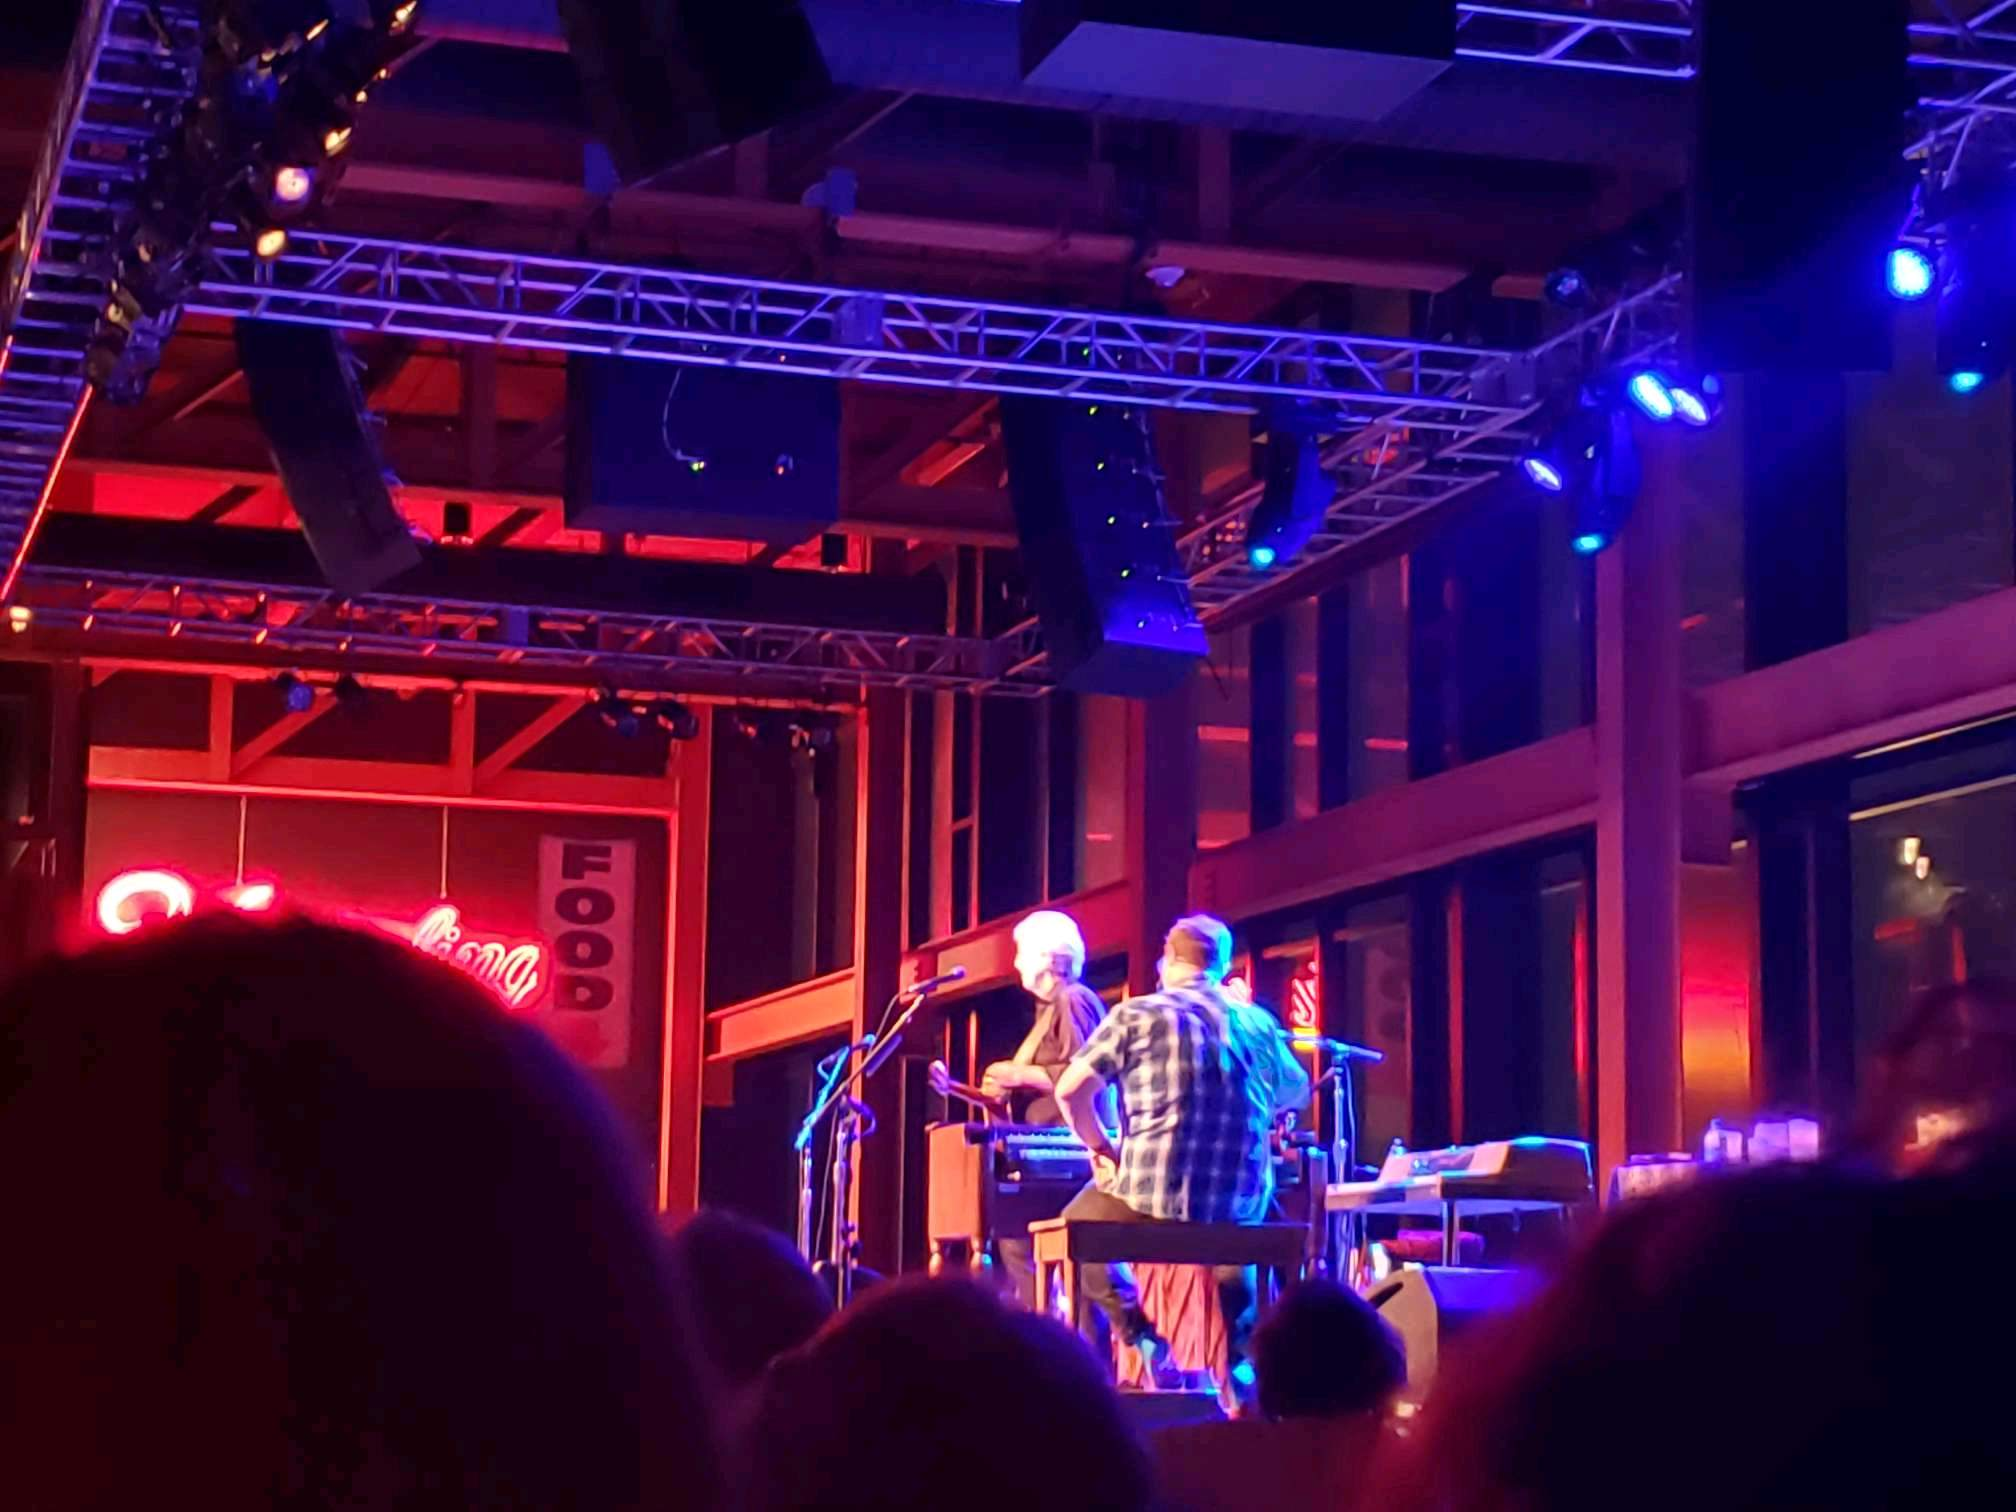 Musikfest Cafe Section 500 Row H Seat 16